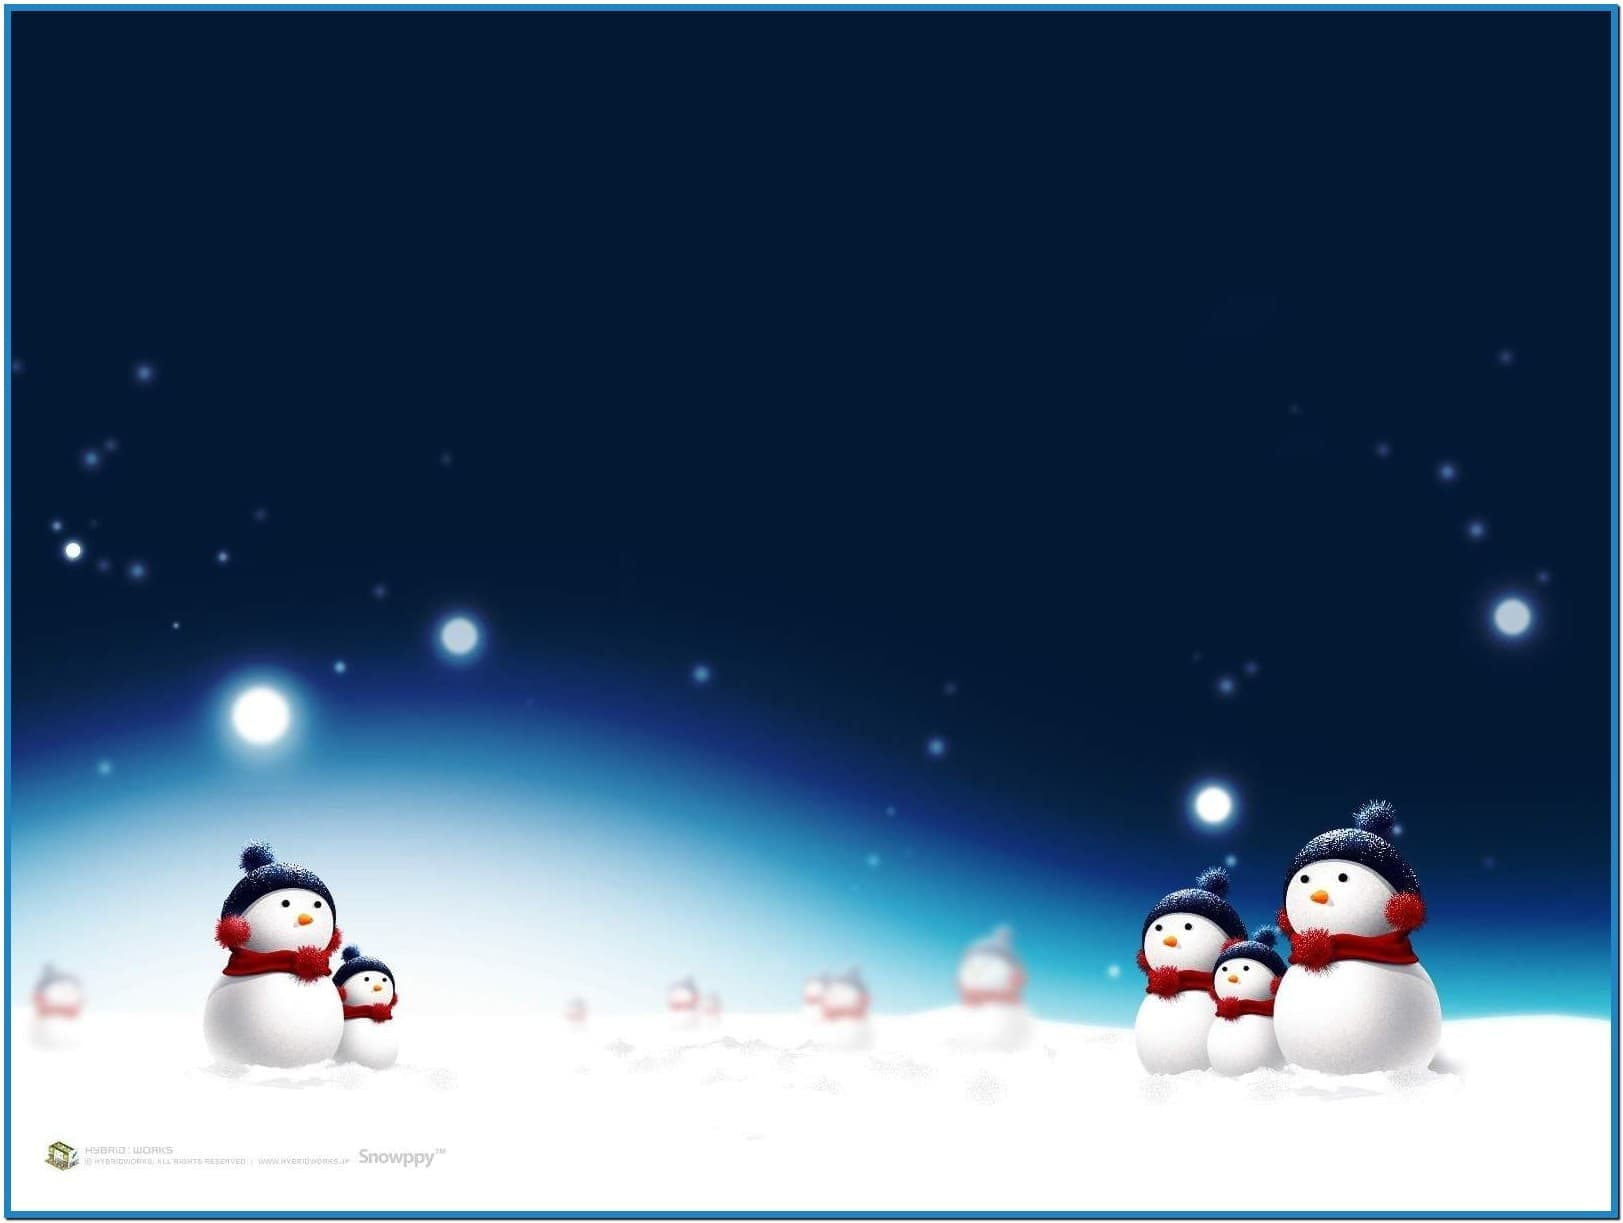 3d animated christmas screensavers and wallpaper - Download free